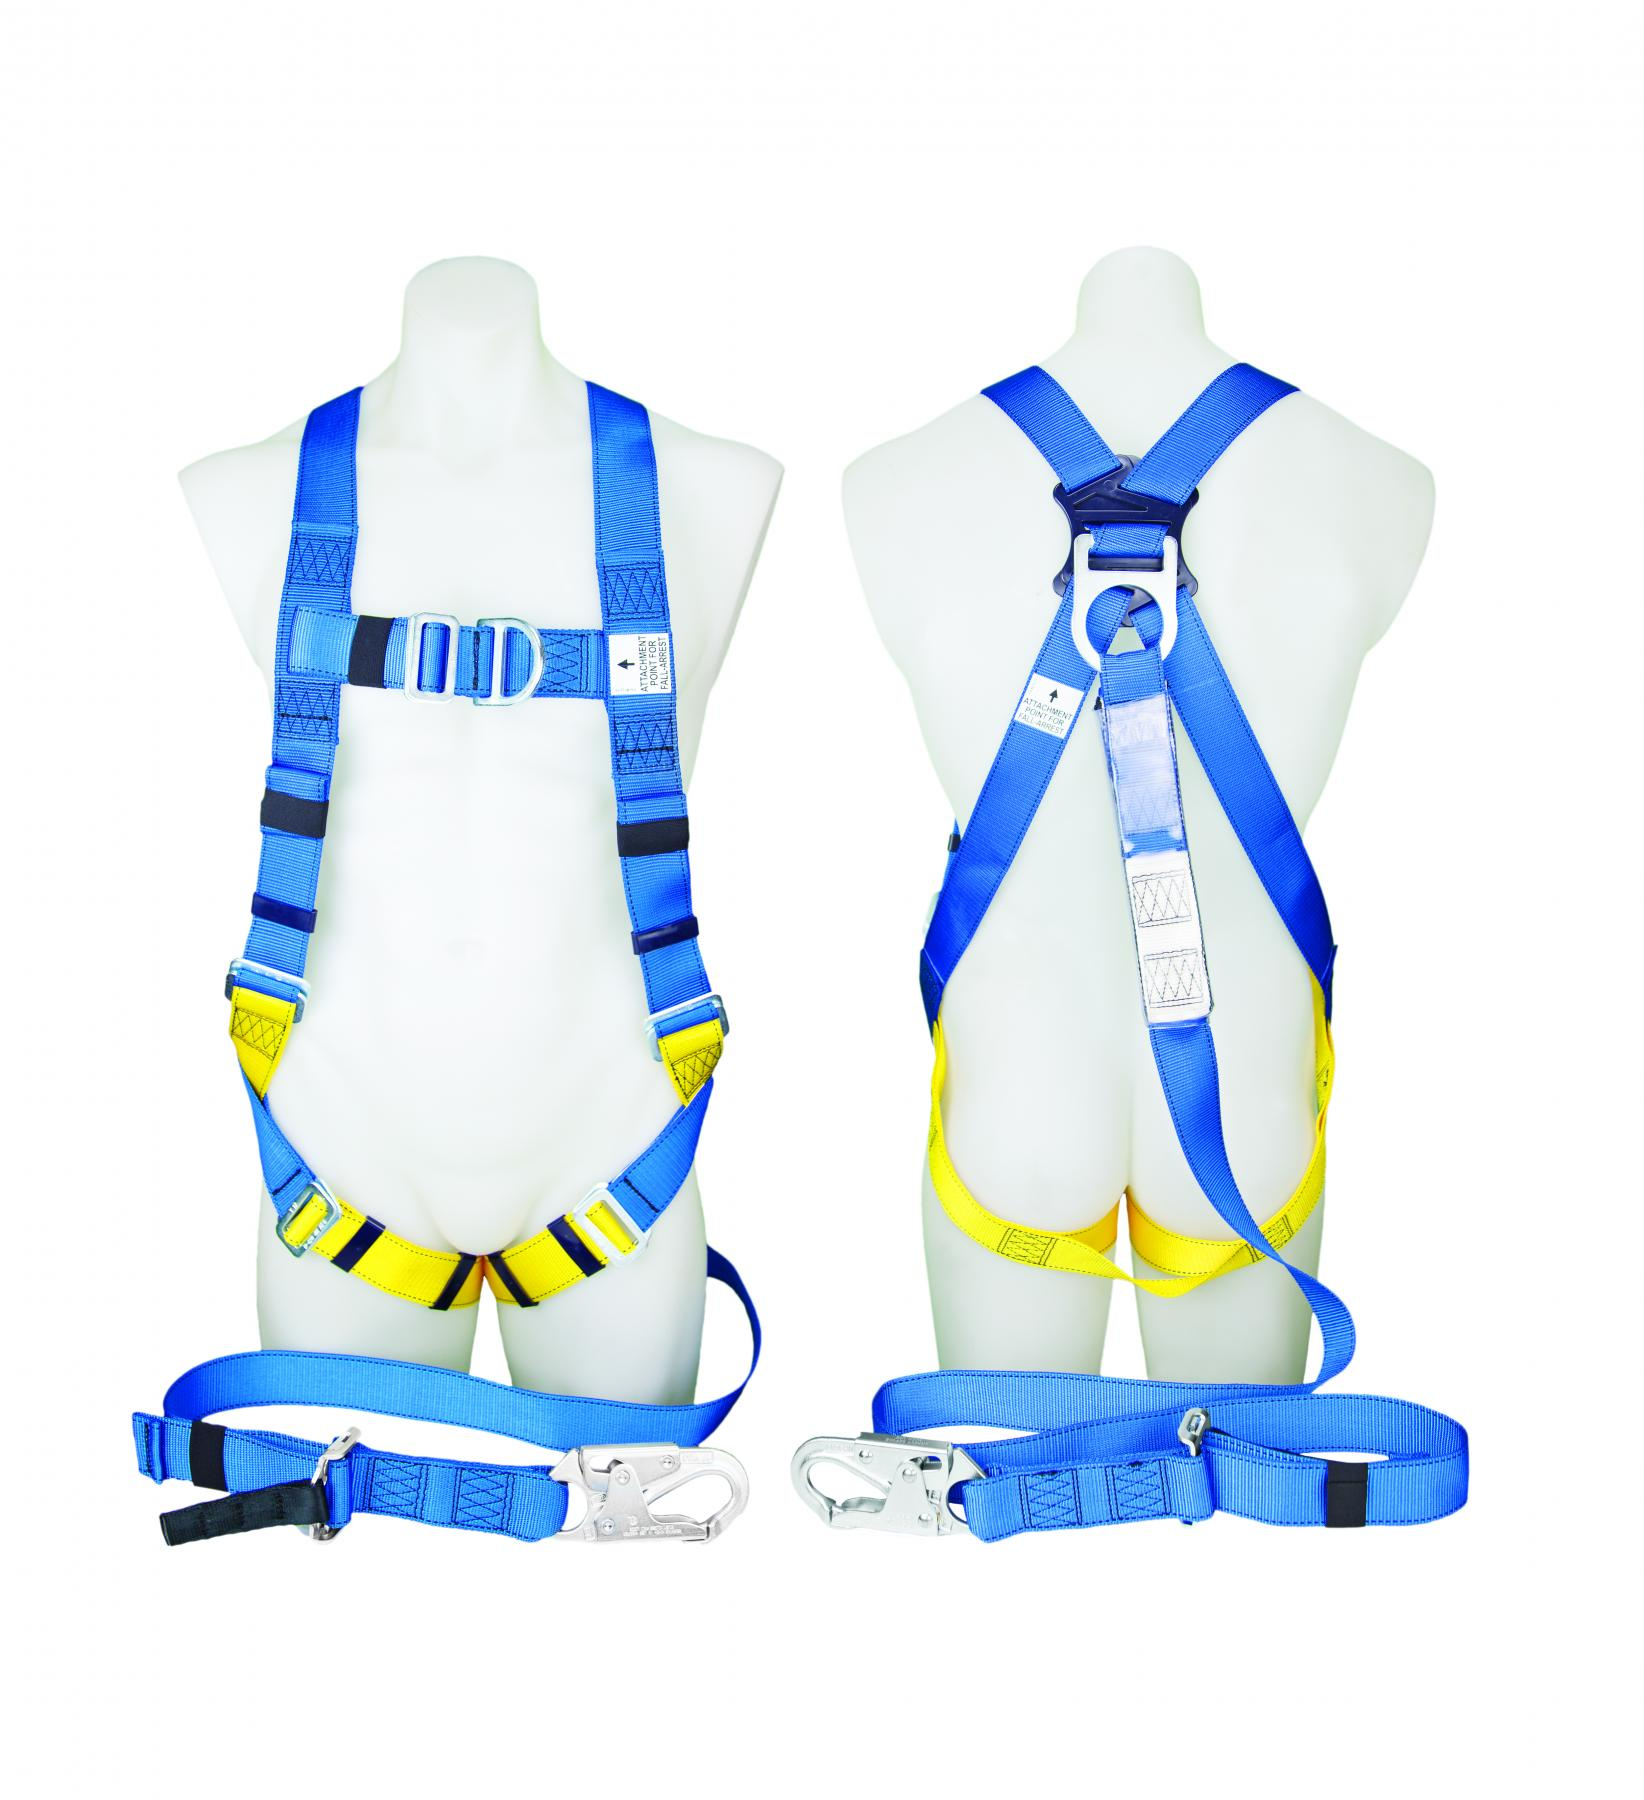 Armour Safety Products Ltd. - Protecta First Body Support - Industrial Harness with Snap Hook